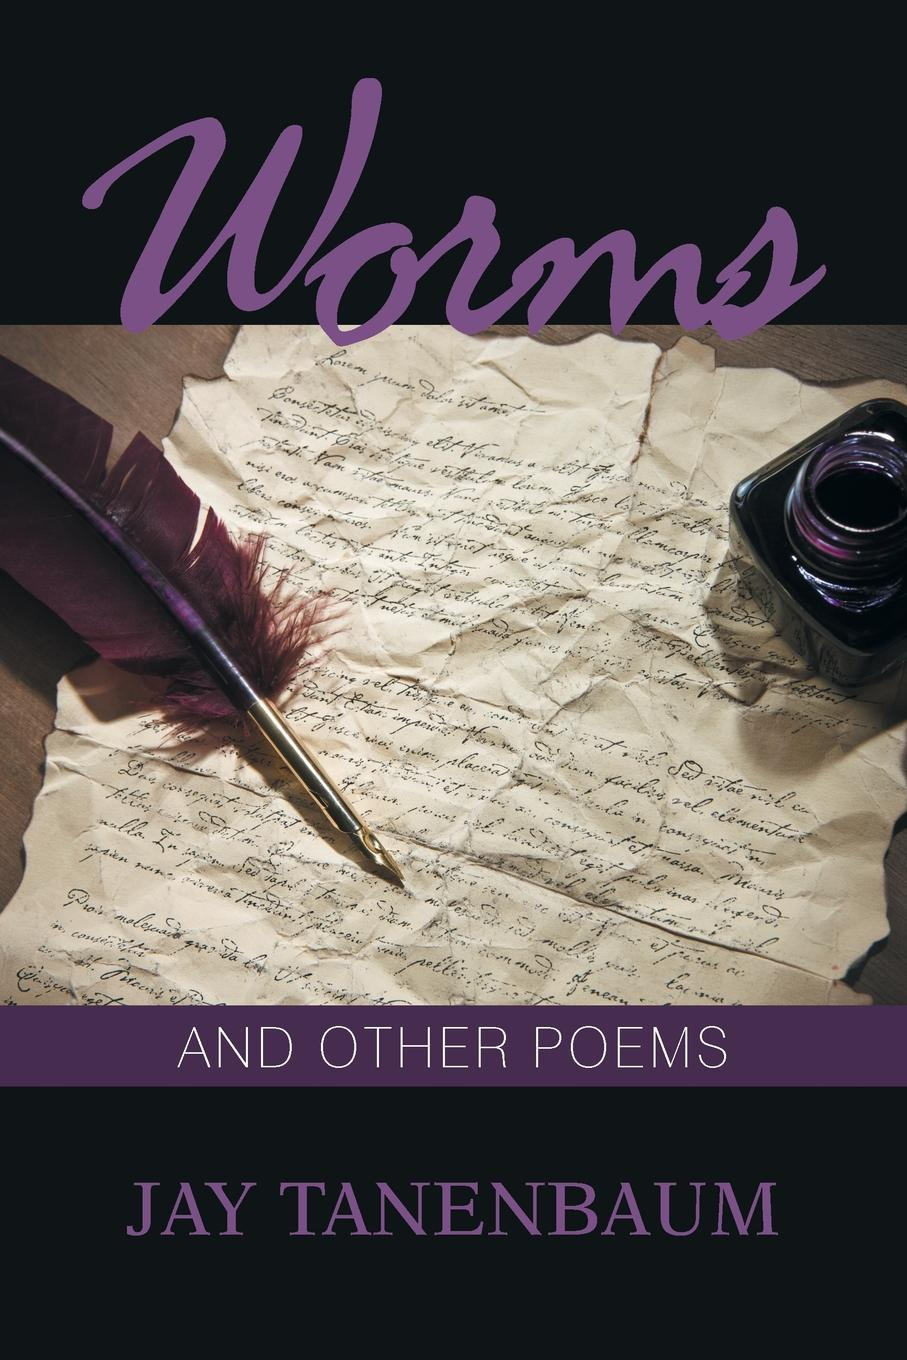 Jay Tanenbaum Worms. And Other Poems